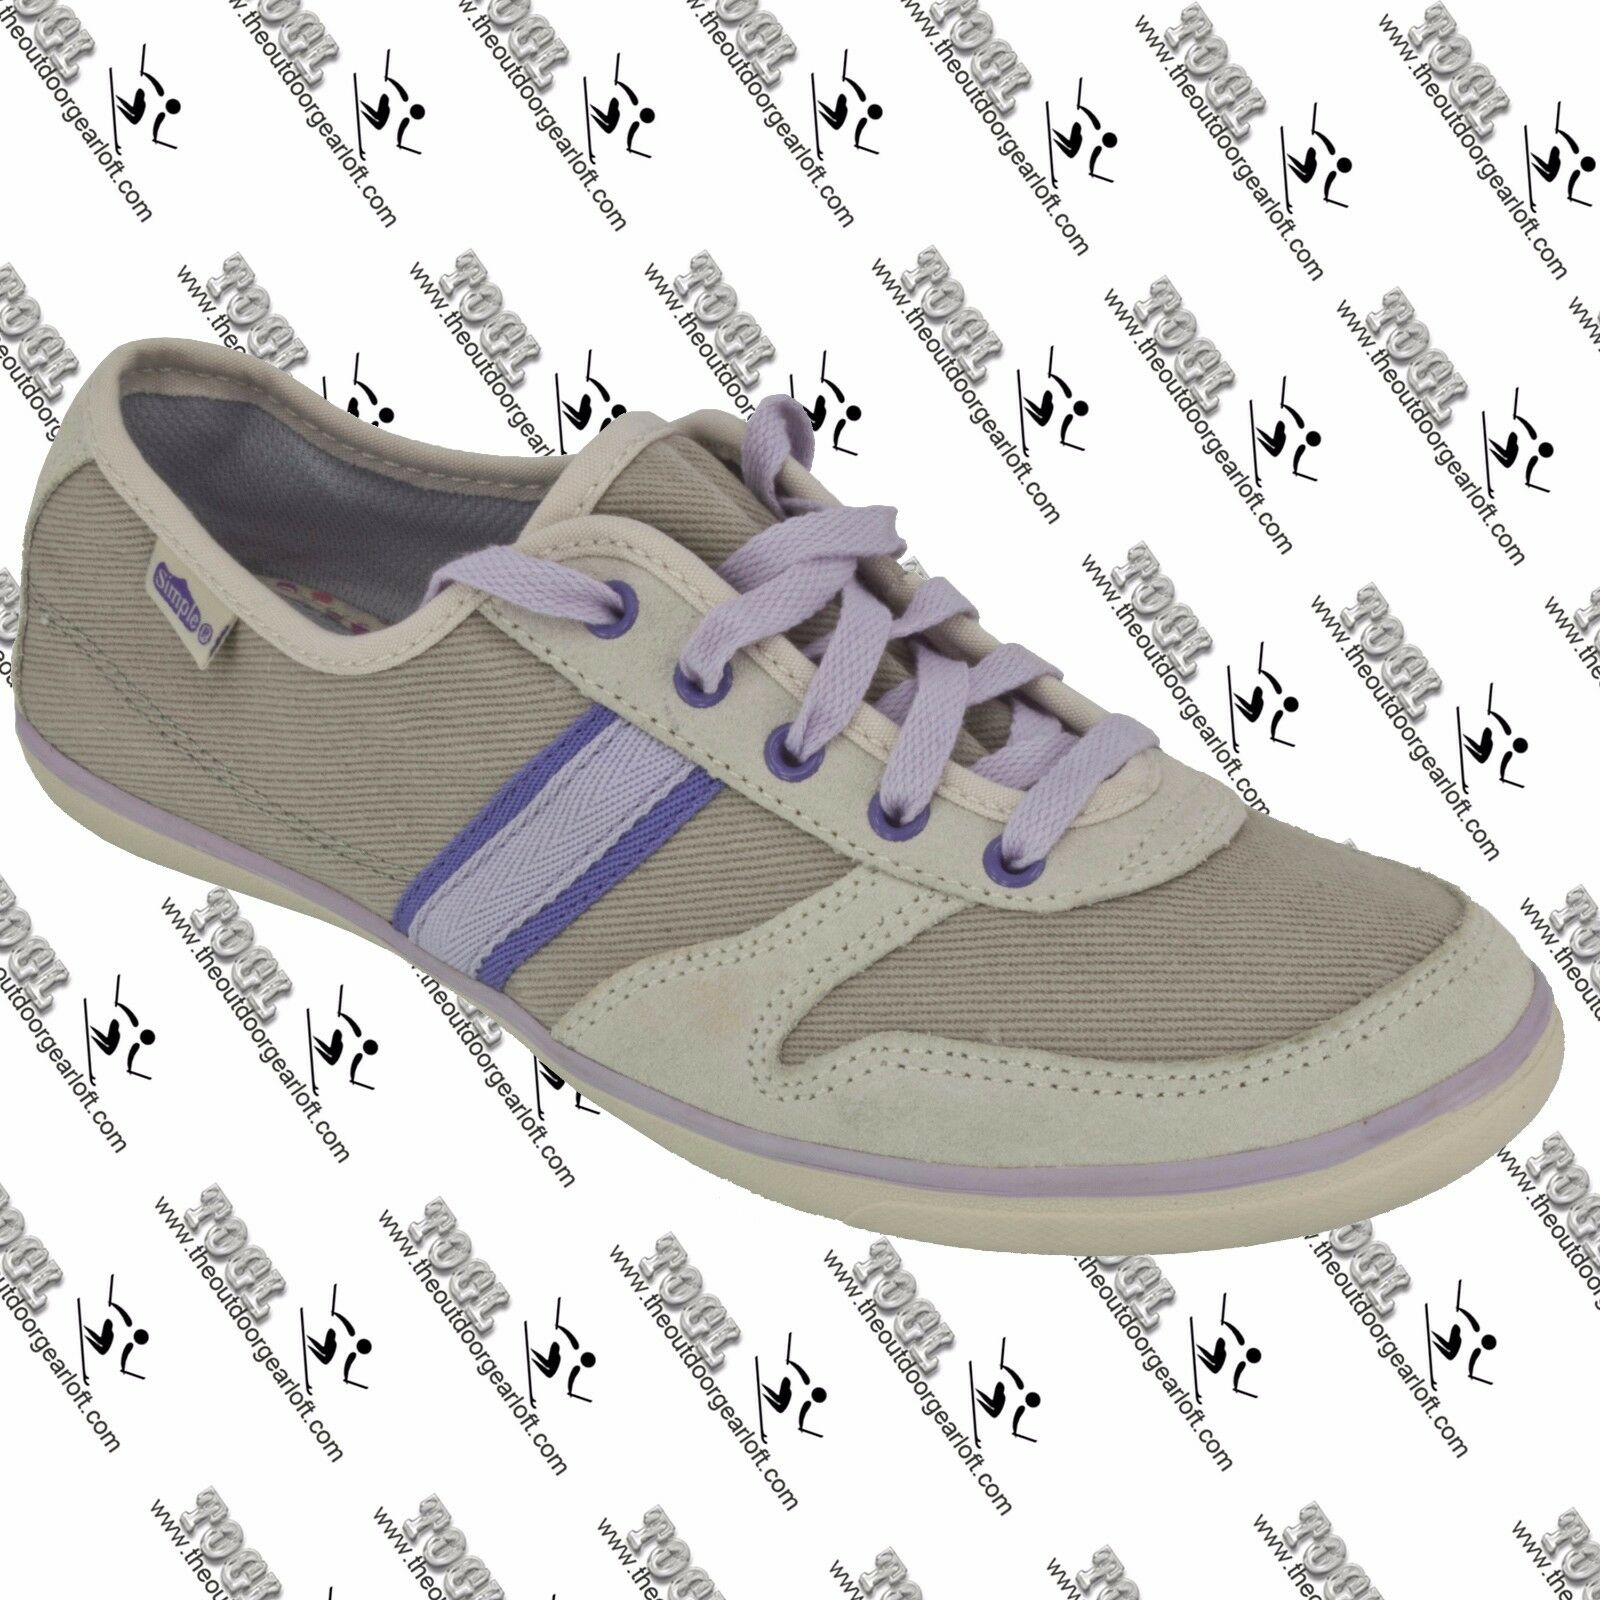 SIMPLE TB6 T 9080 WOMENS ALOHA CANVAS LEATHER S US LACE UP SNEAKER SHOES US S 7 9b49c3